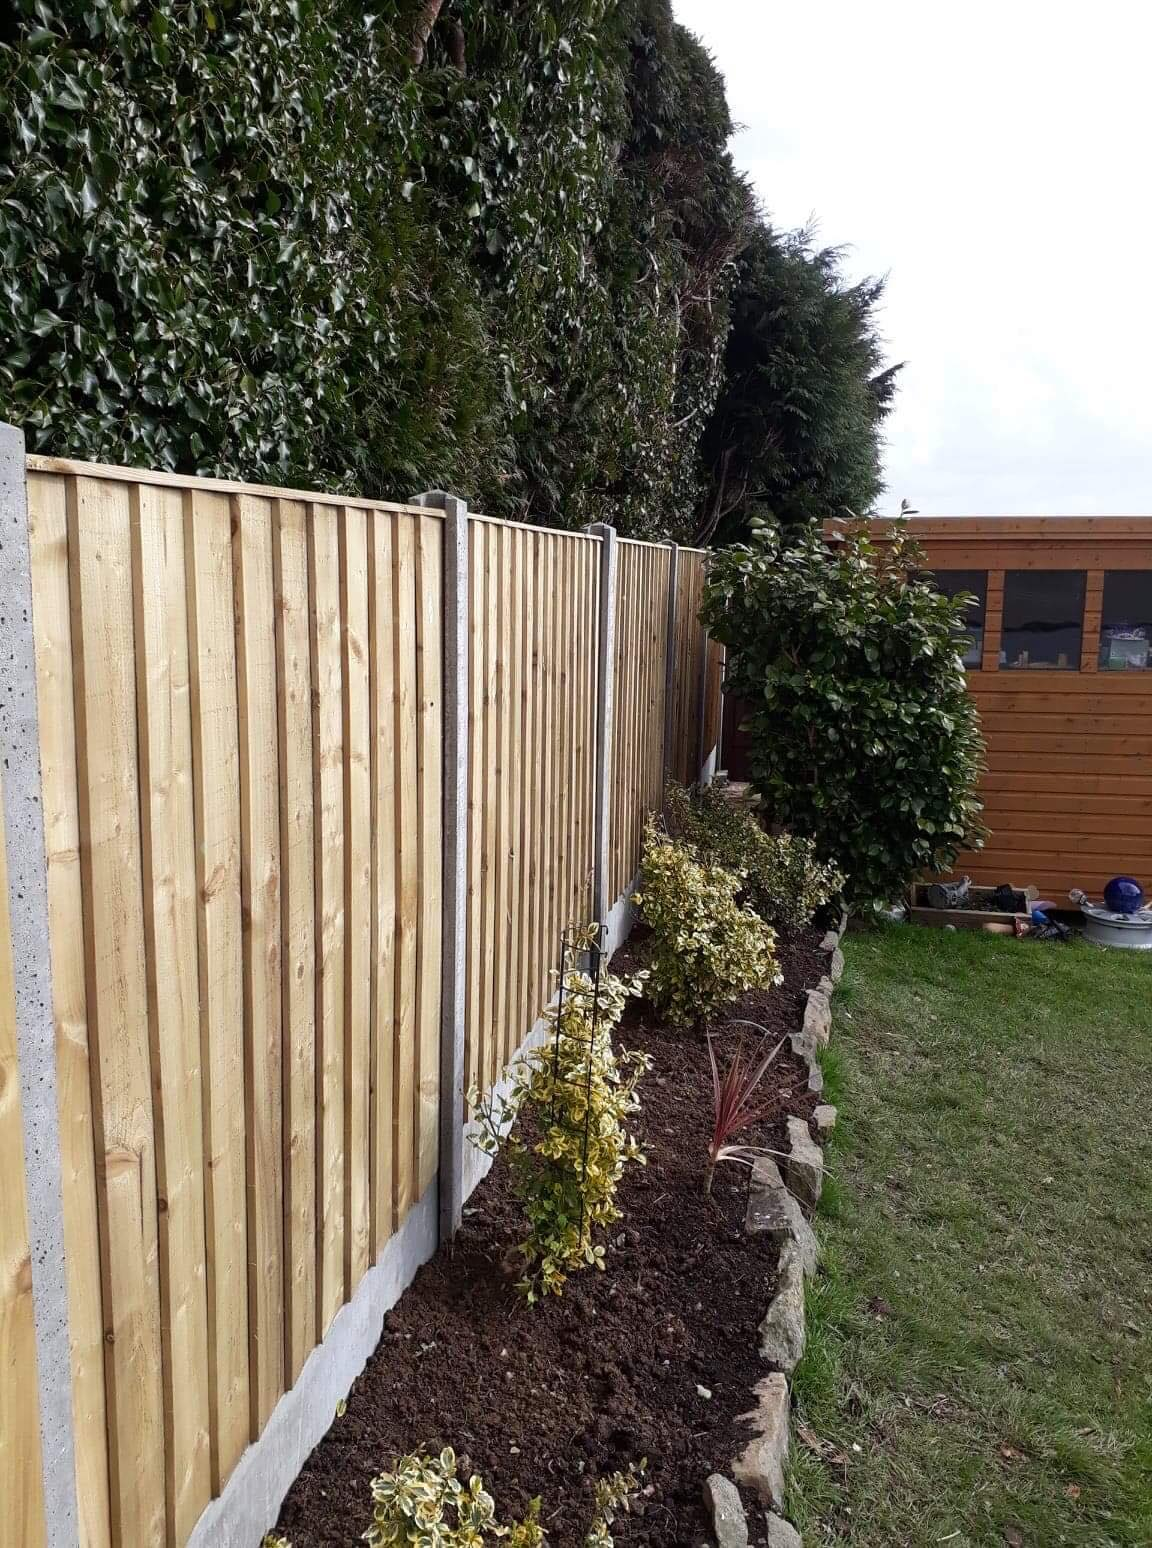 Straight edged top of panel fencing in concrete base, with planted border in front.